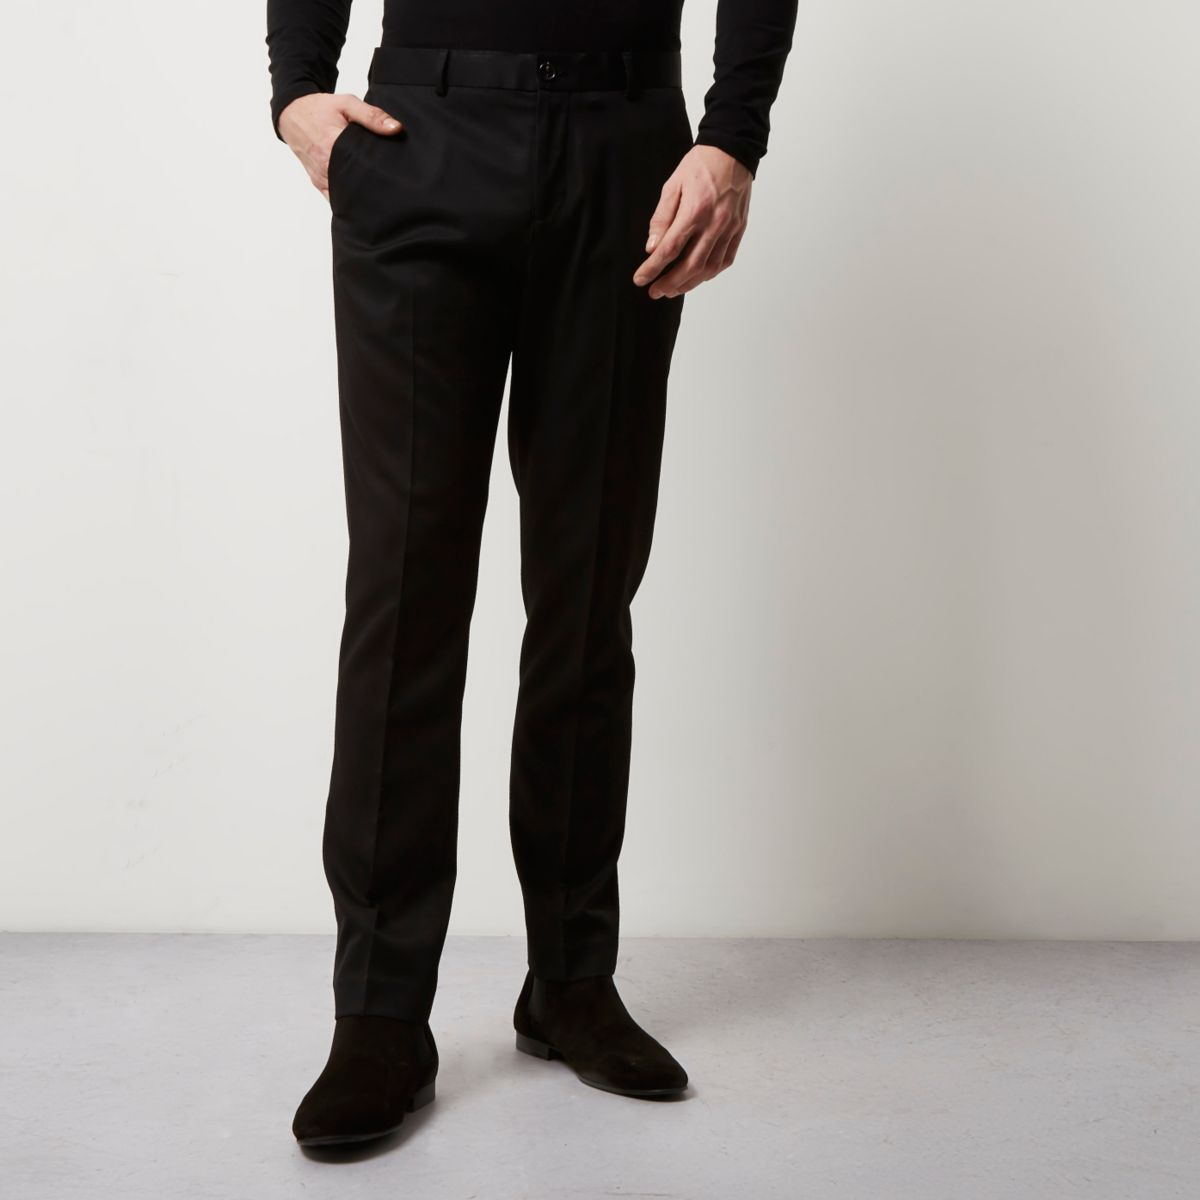 Men's Smart Trousers Sale Smarten up for less with our men's formal trousers sale. A great pair of formal trousers will never go out of style so if you spot your size and a style you love then snap them up.